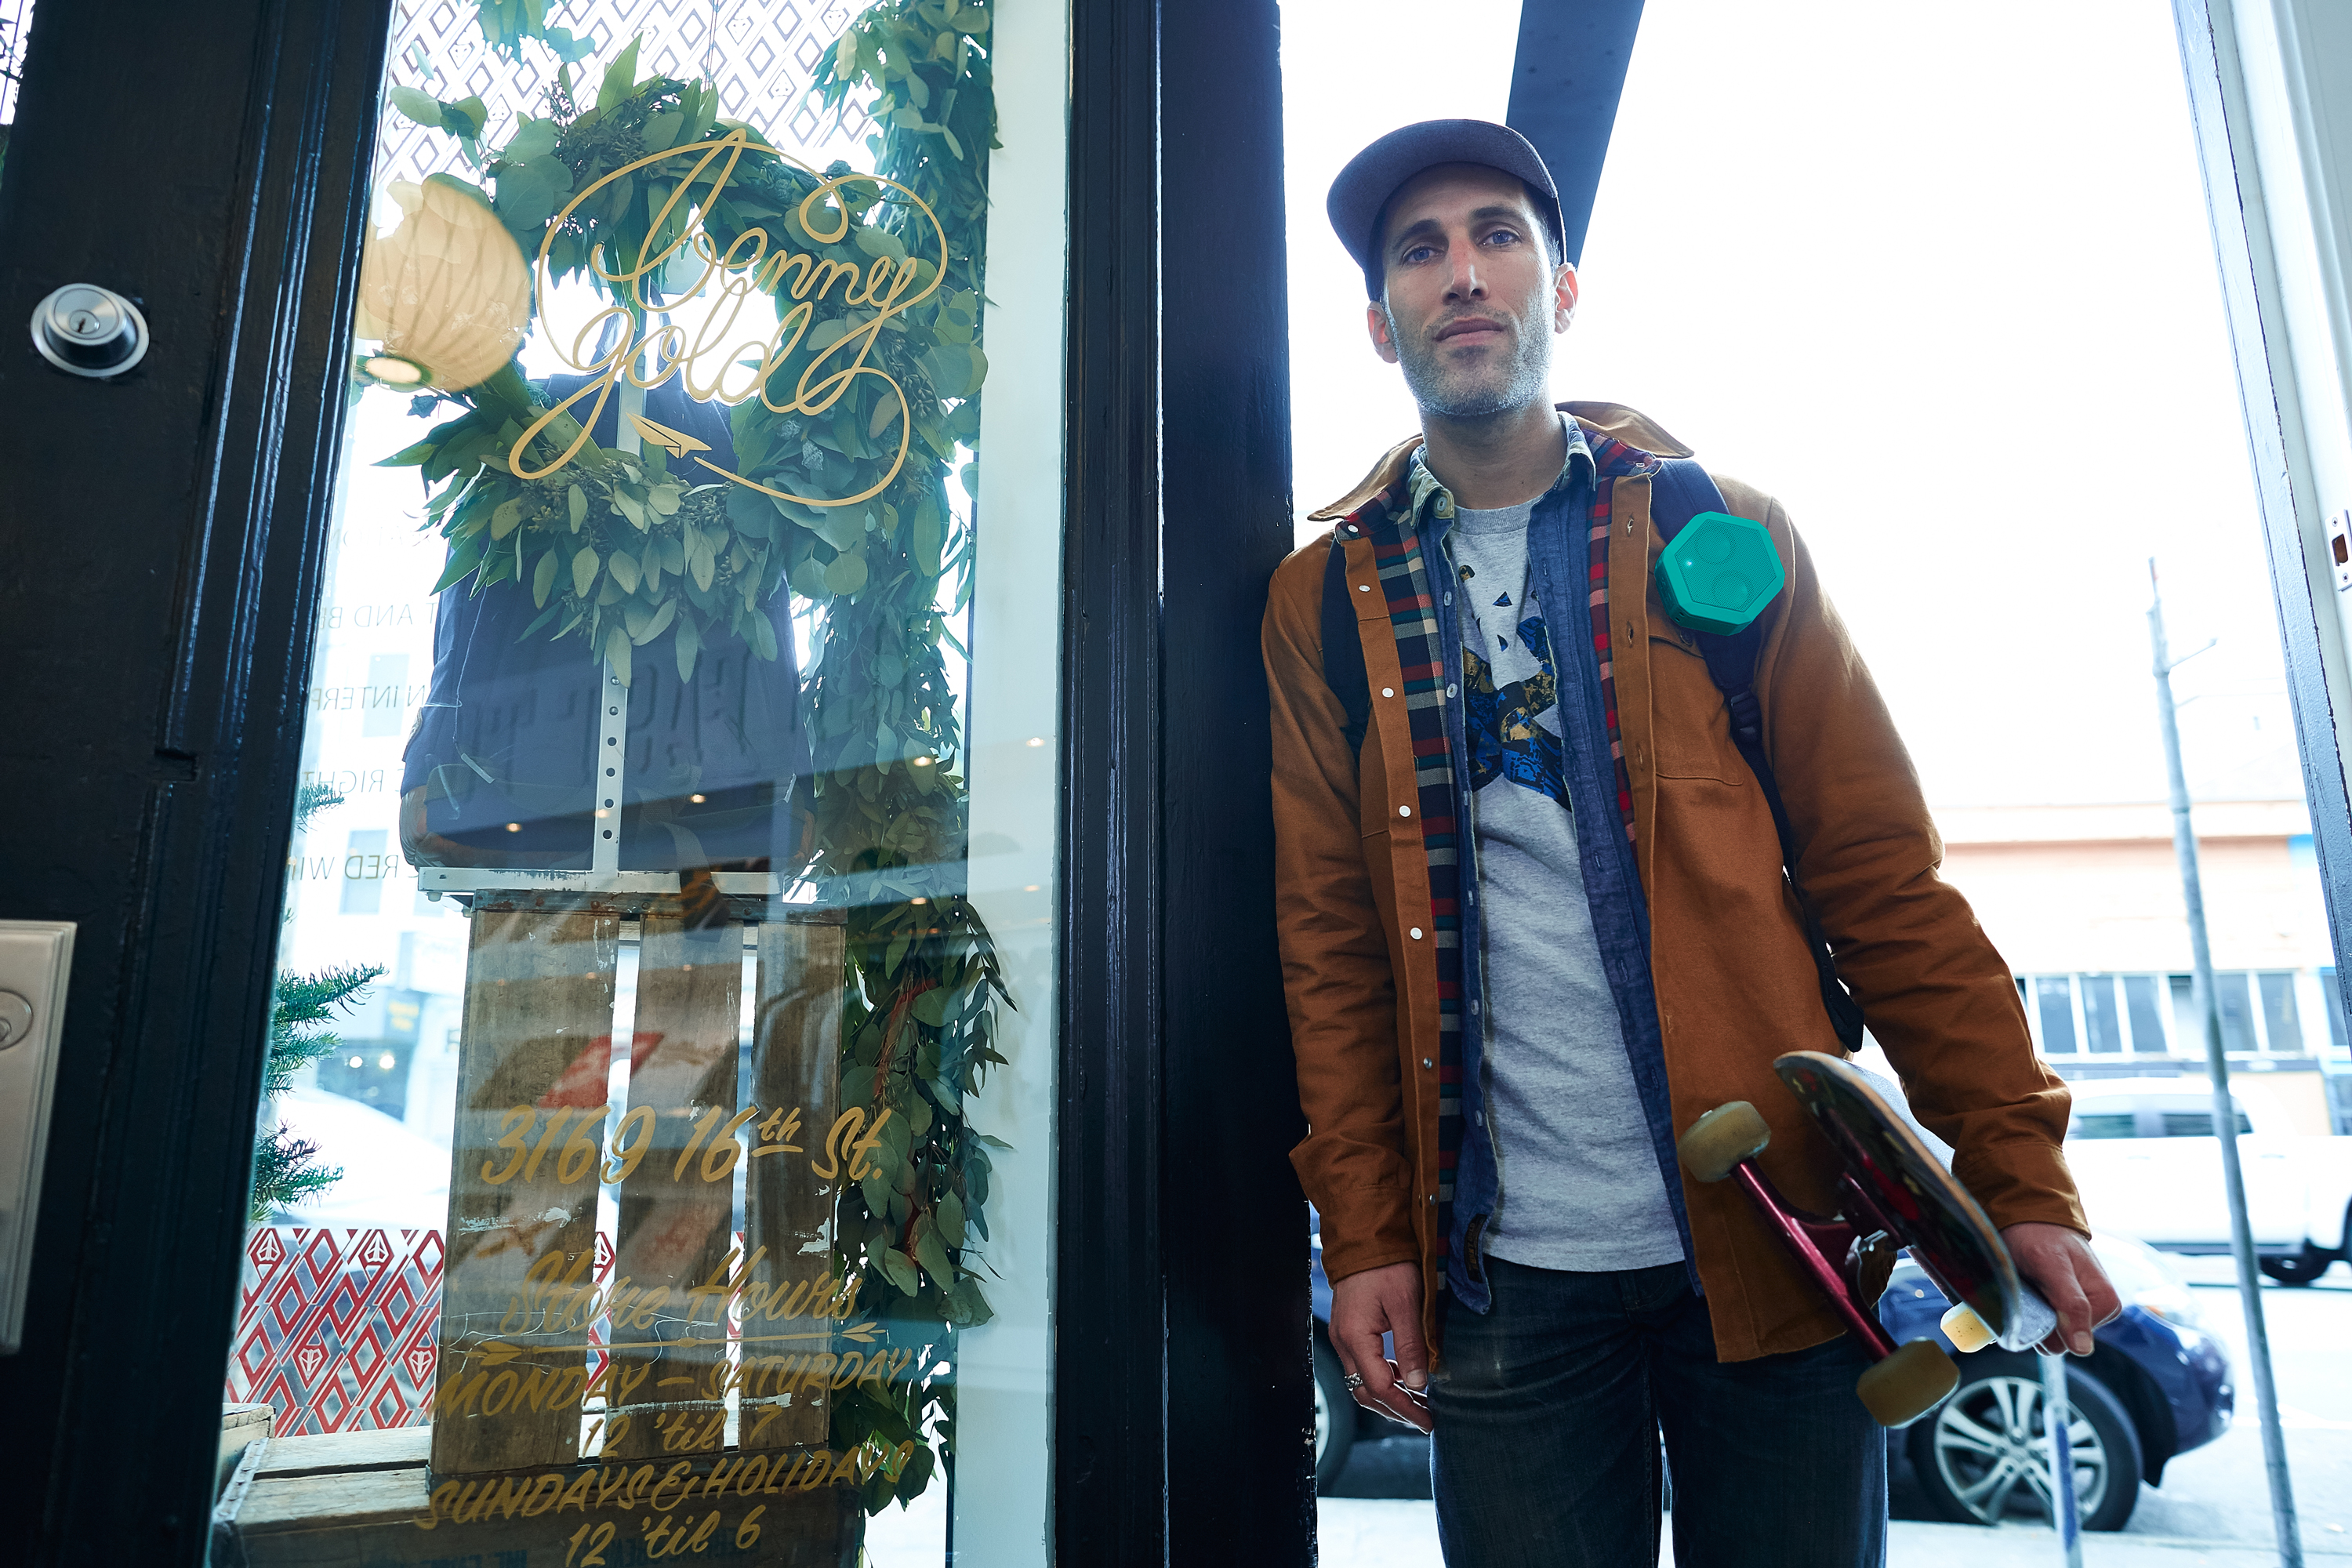 Benny Gold standing in storefront doorway with boombotix speaker strapped to backpack